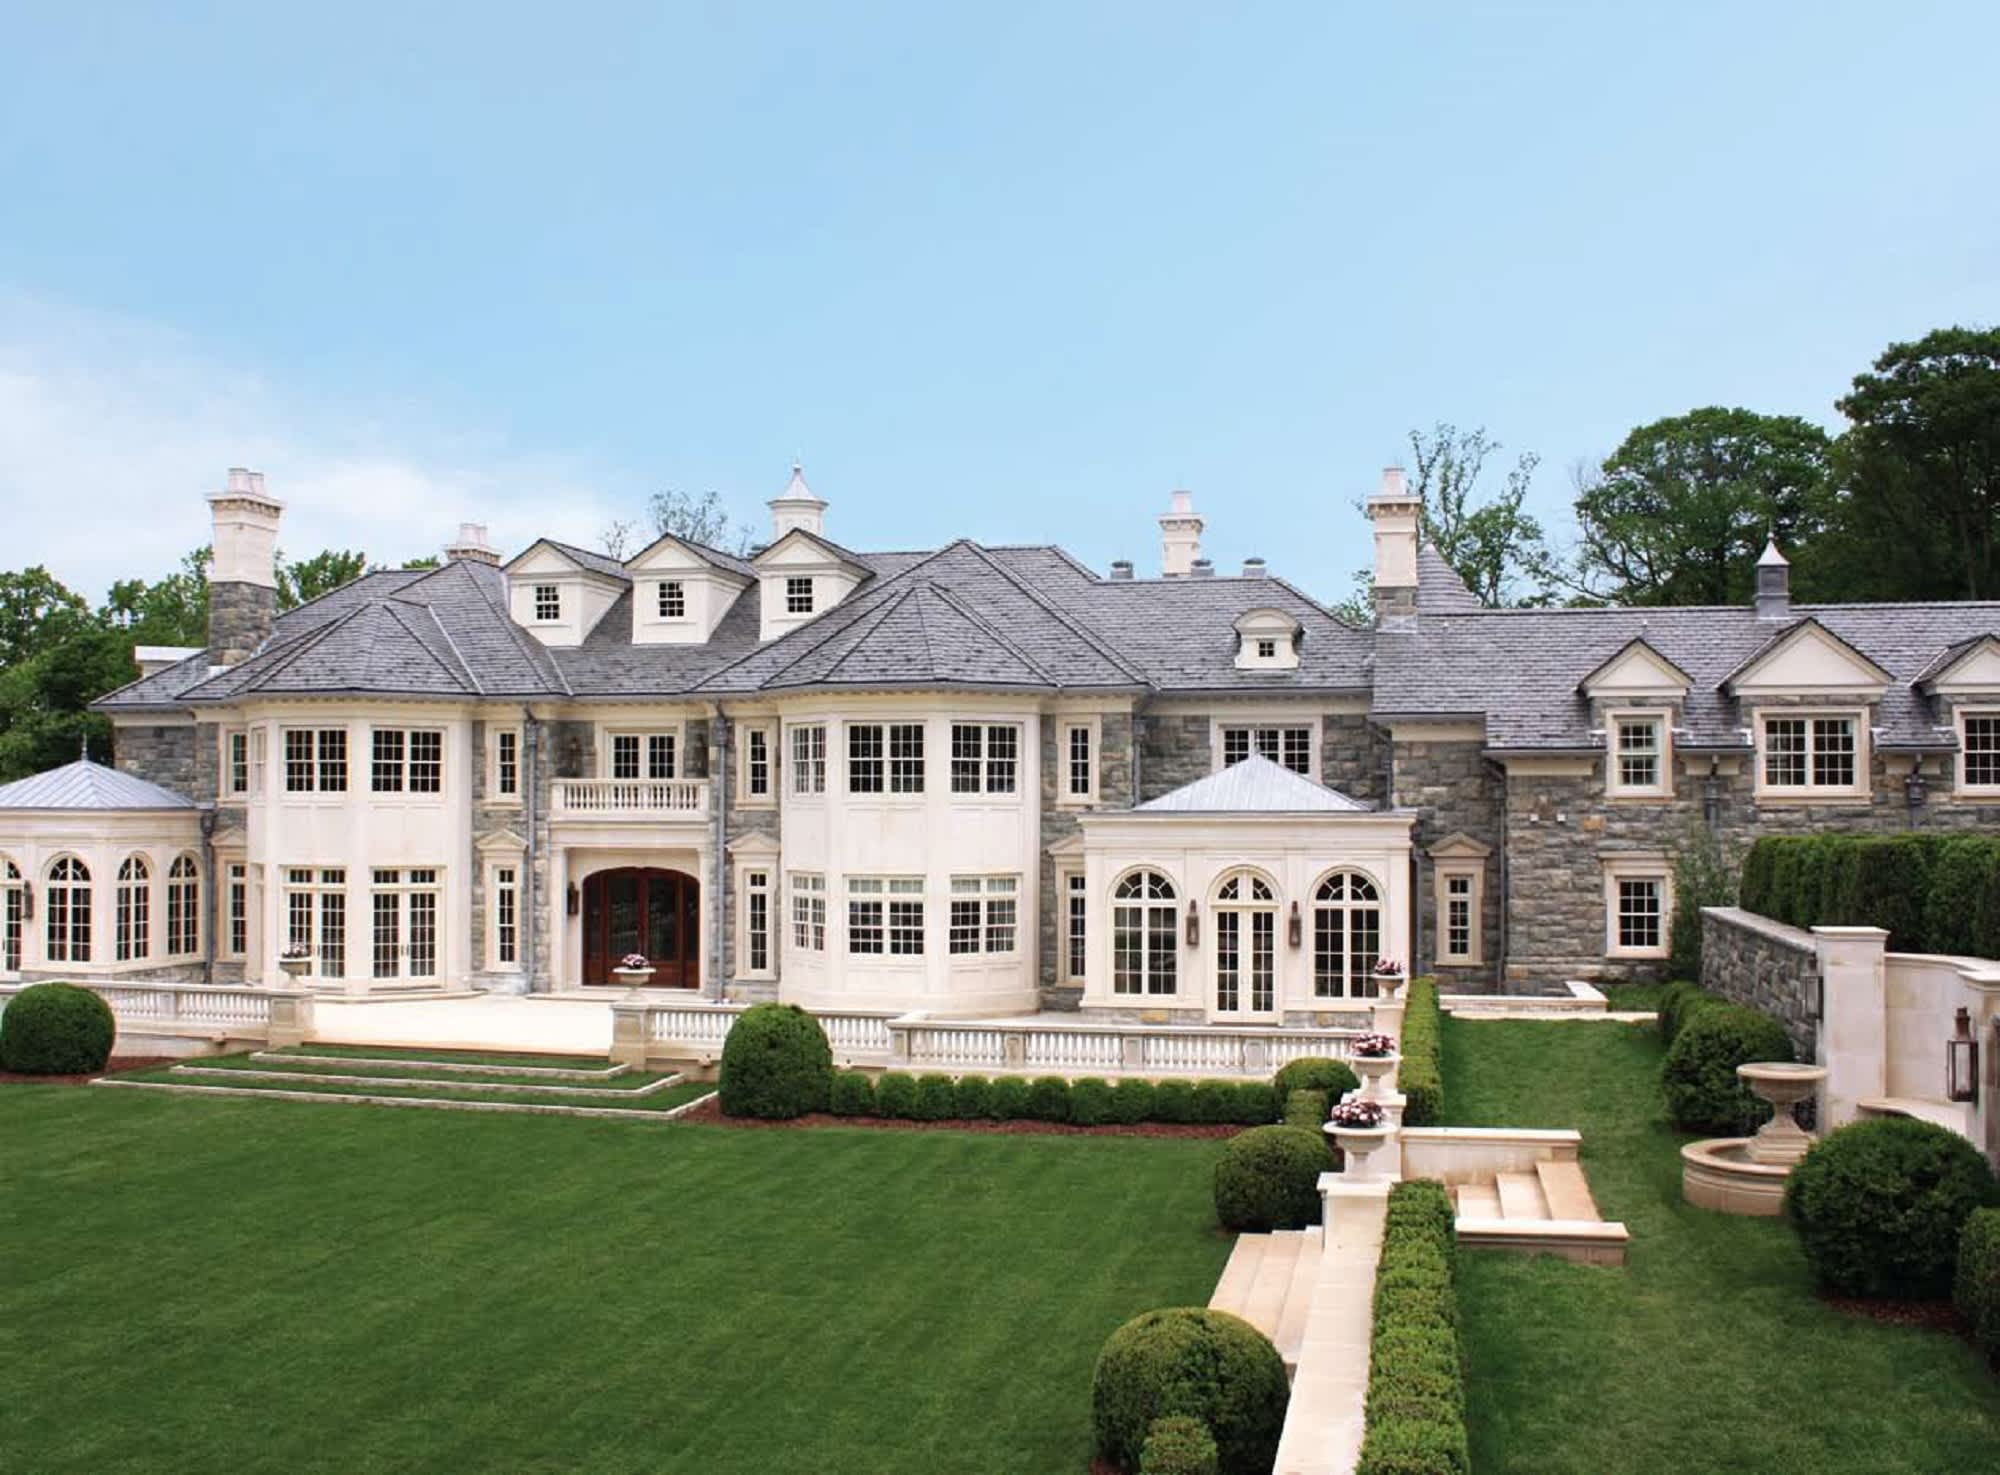 most expensive house in new jersey is on the market for 49 million